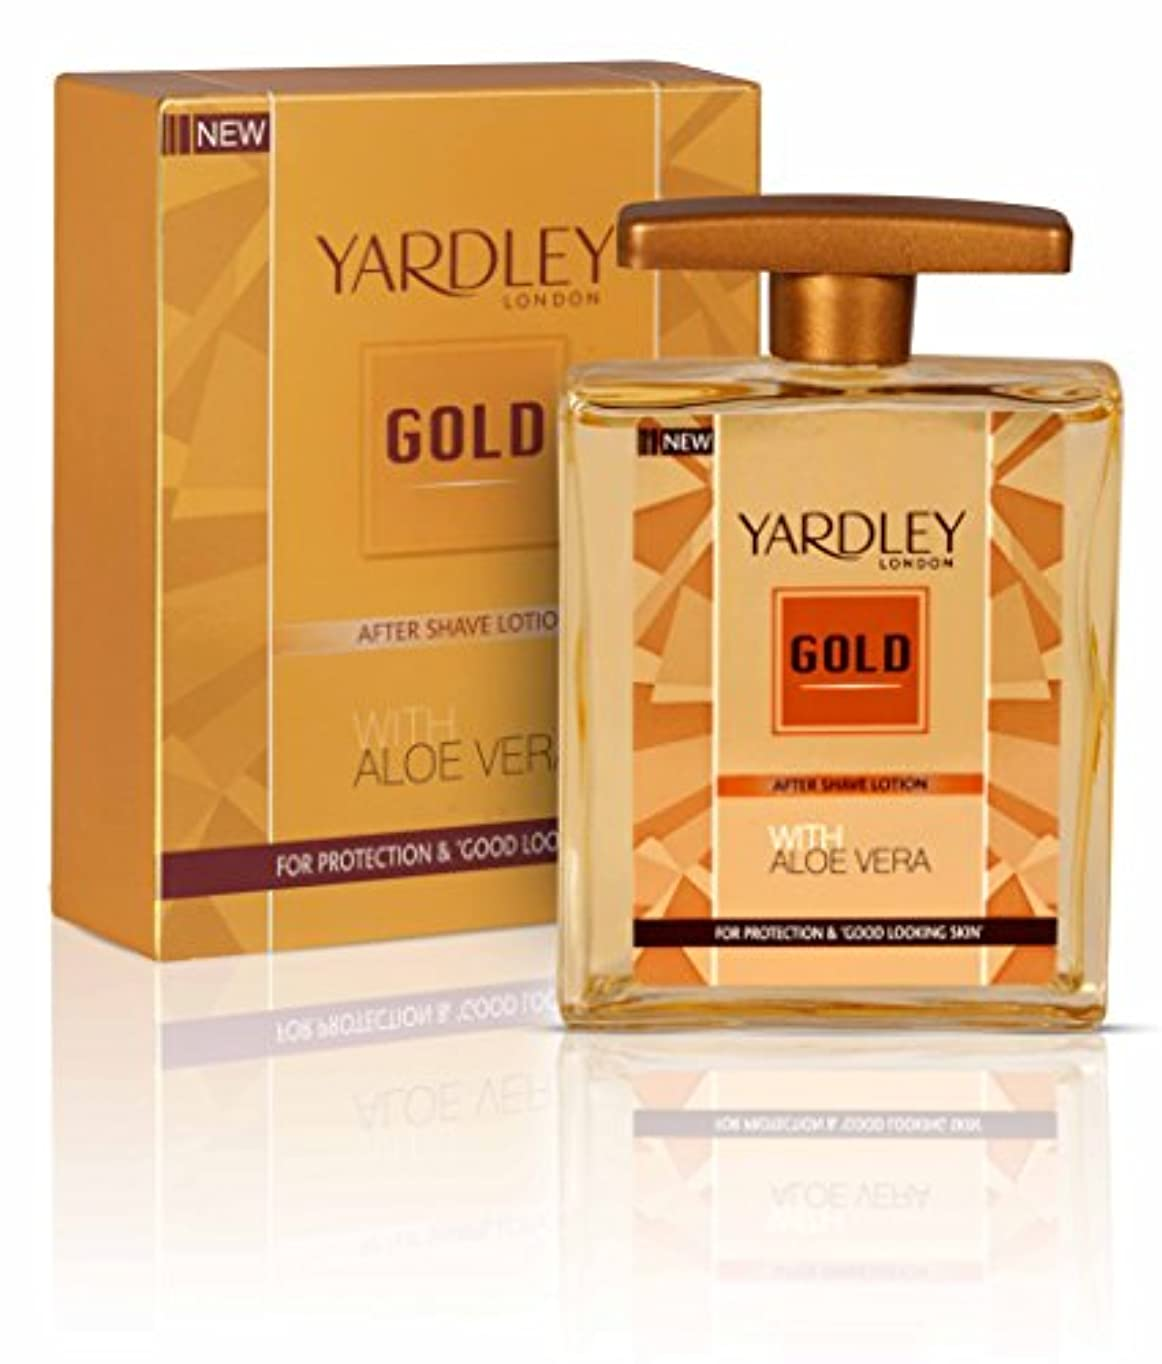 Yardley London After Shave Lotion Gold 100ml by Yardley